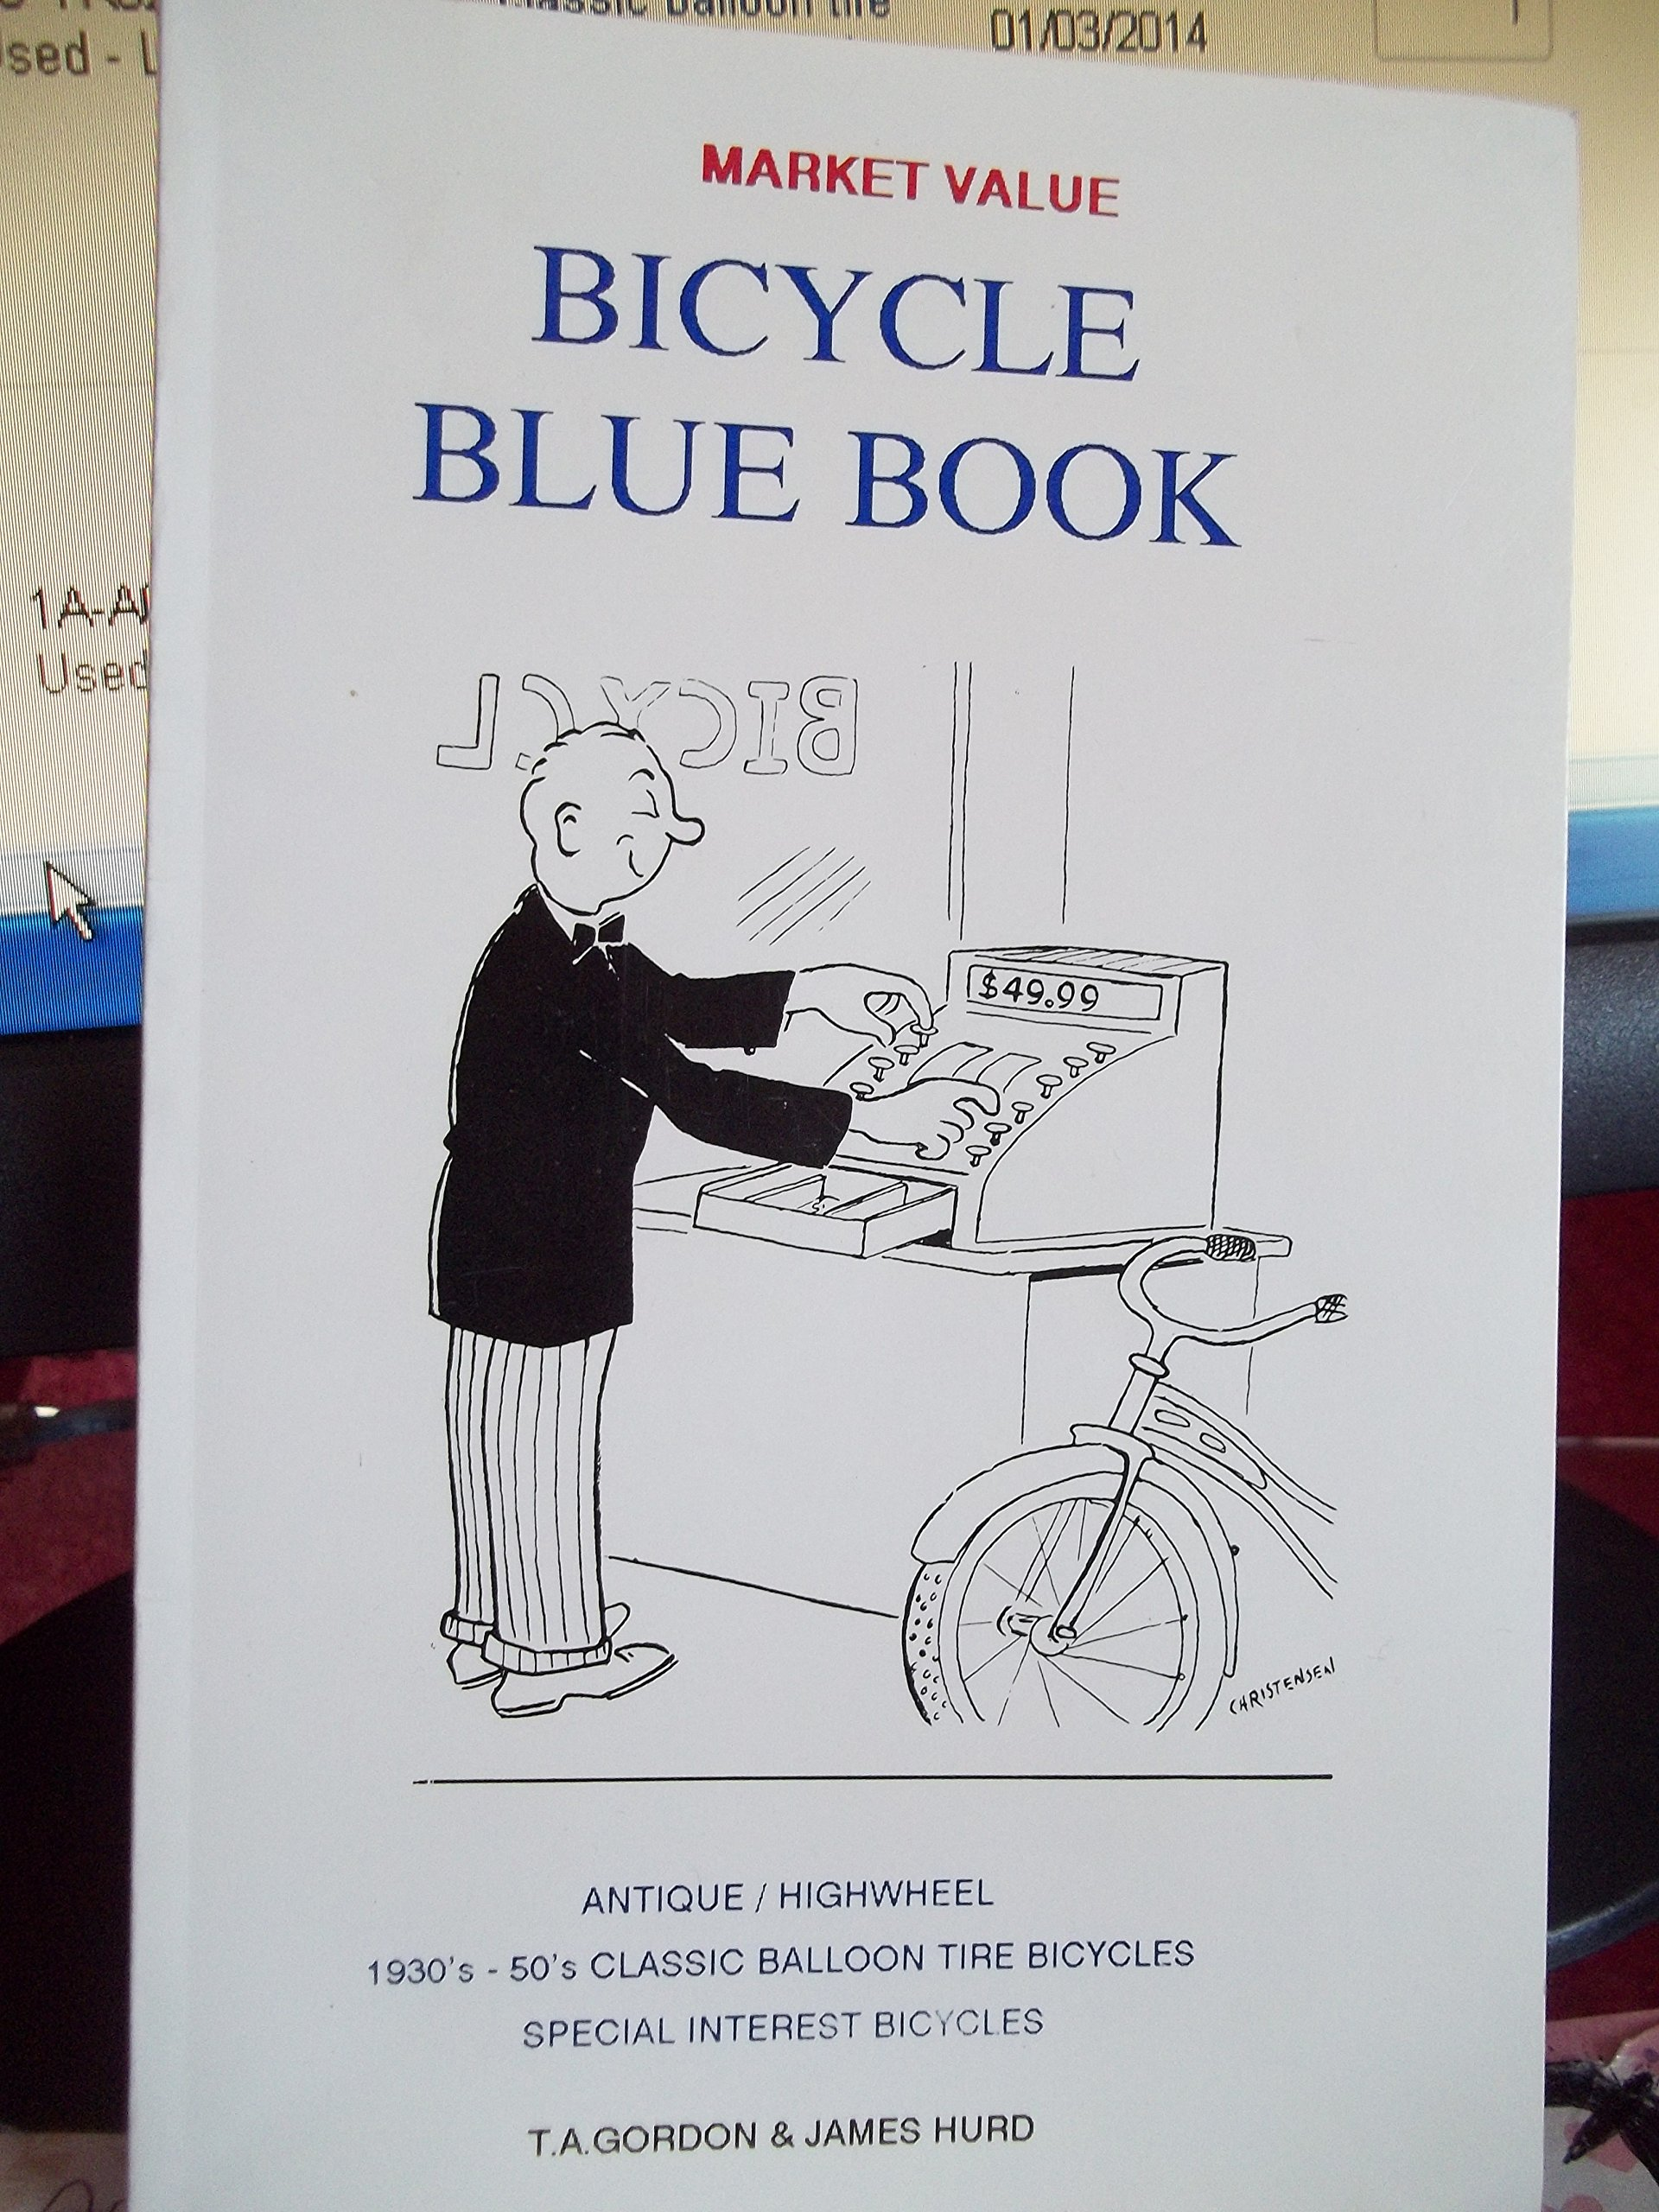 Bicycle Blue Book Value >> Bicycle Blue Book Market Value Antique Highwheel 1930 S